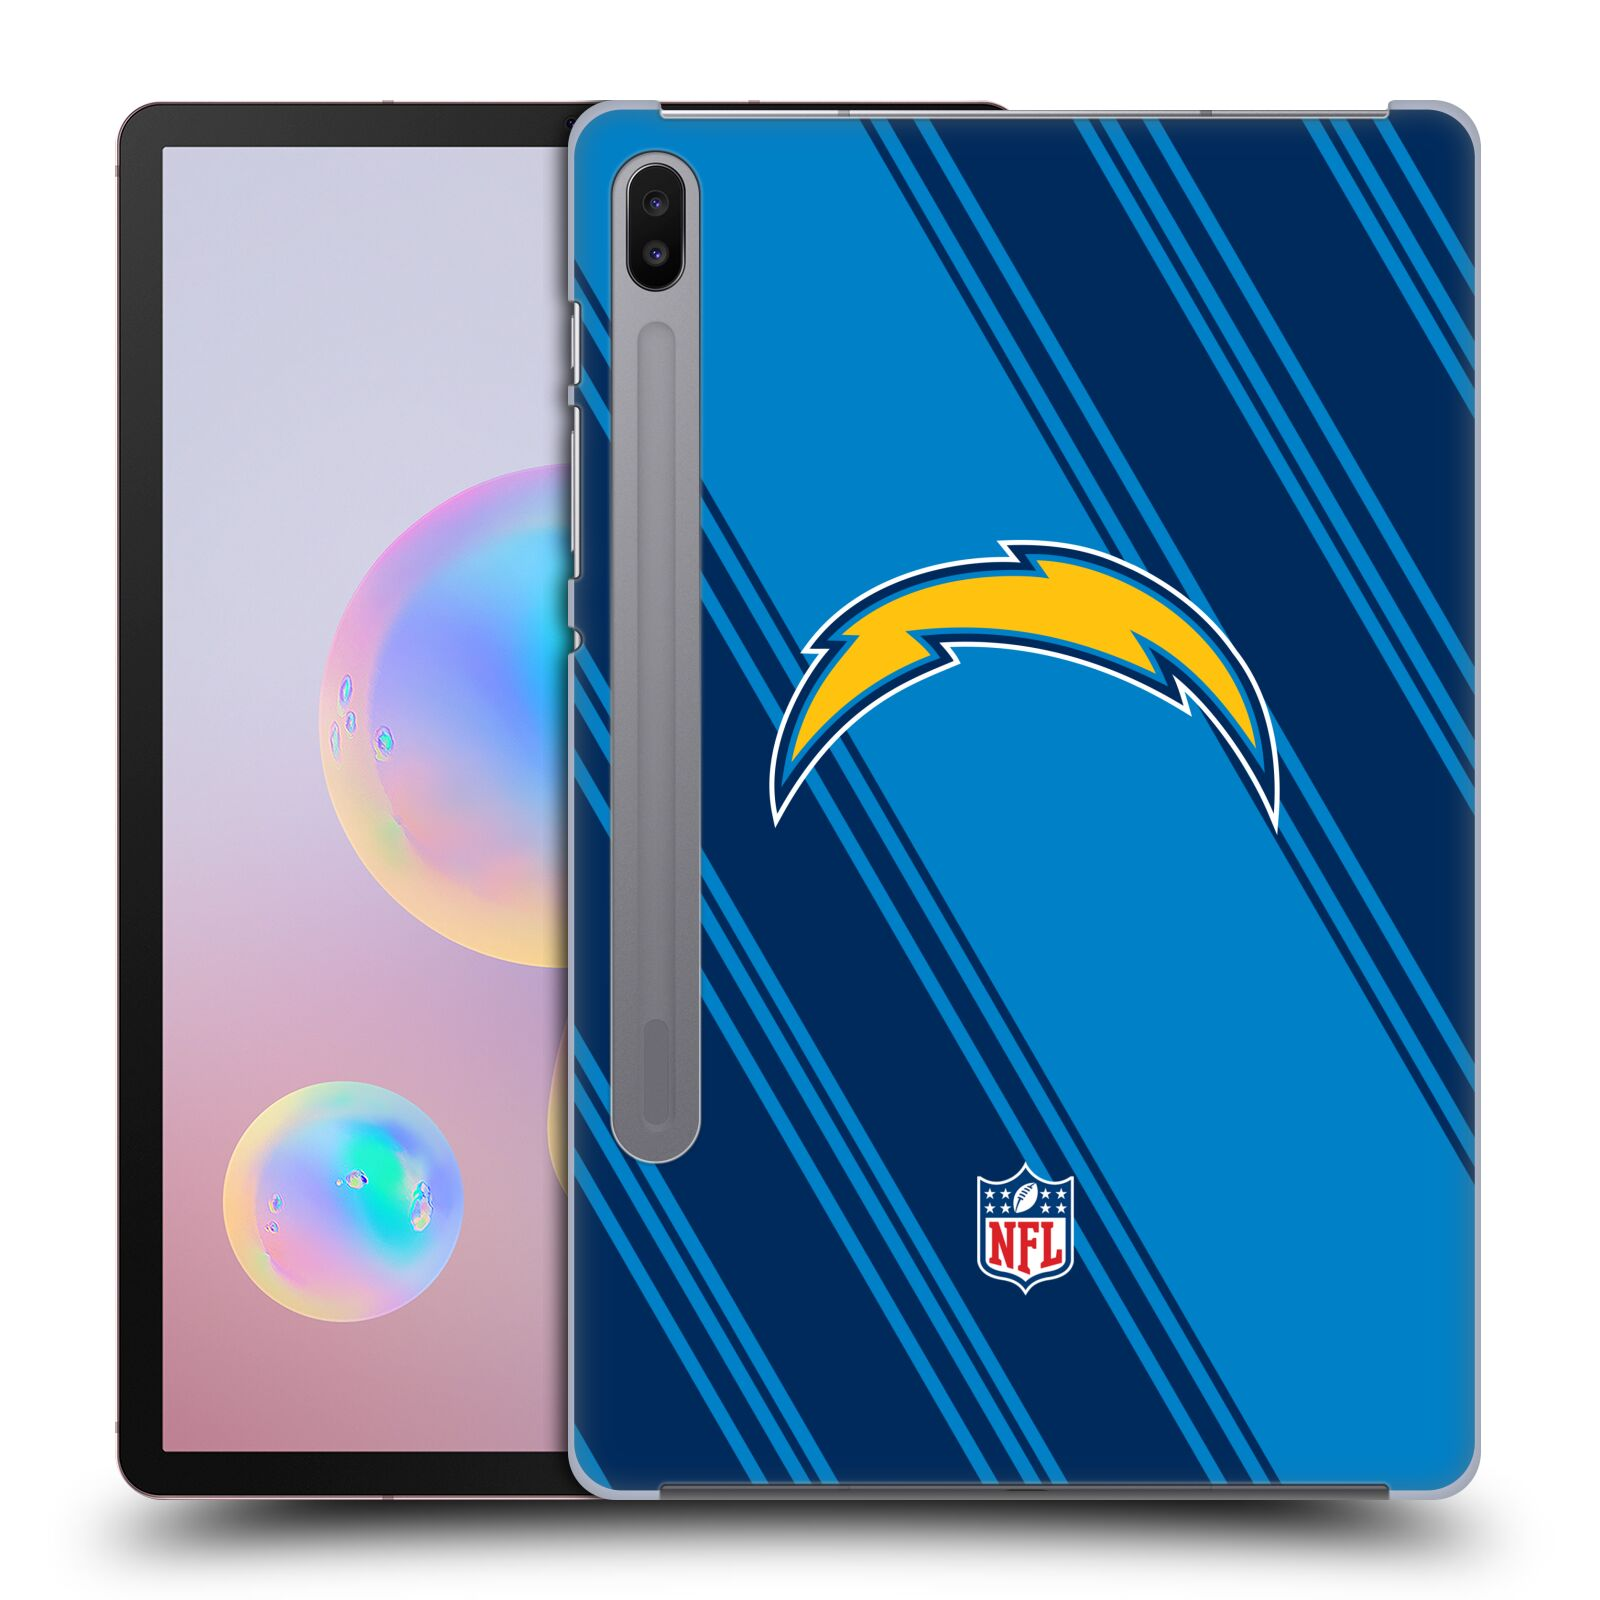 Official NFL 2017/18 Los Angeles Chargers Stripes Case for Samsung Galaxy Tab S6 (2019)